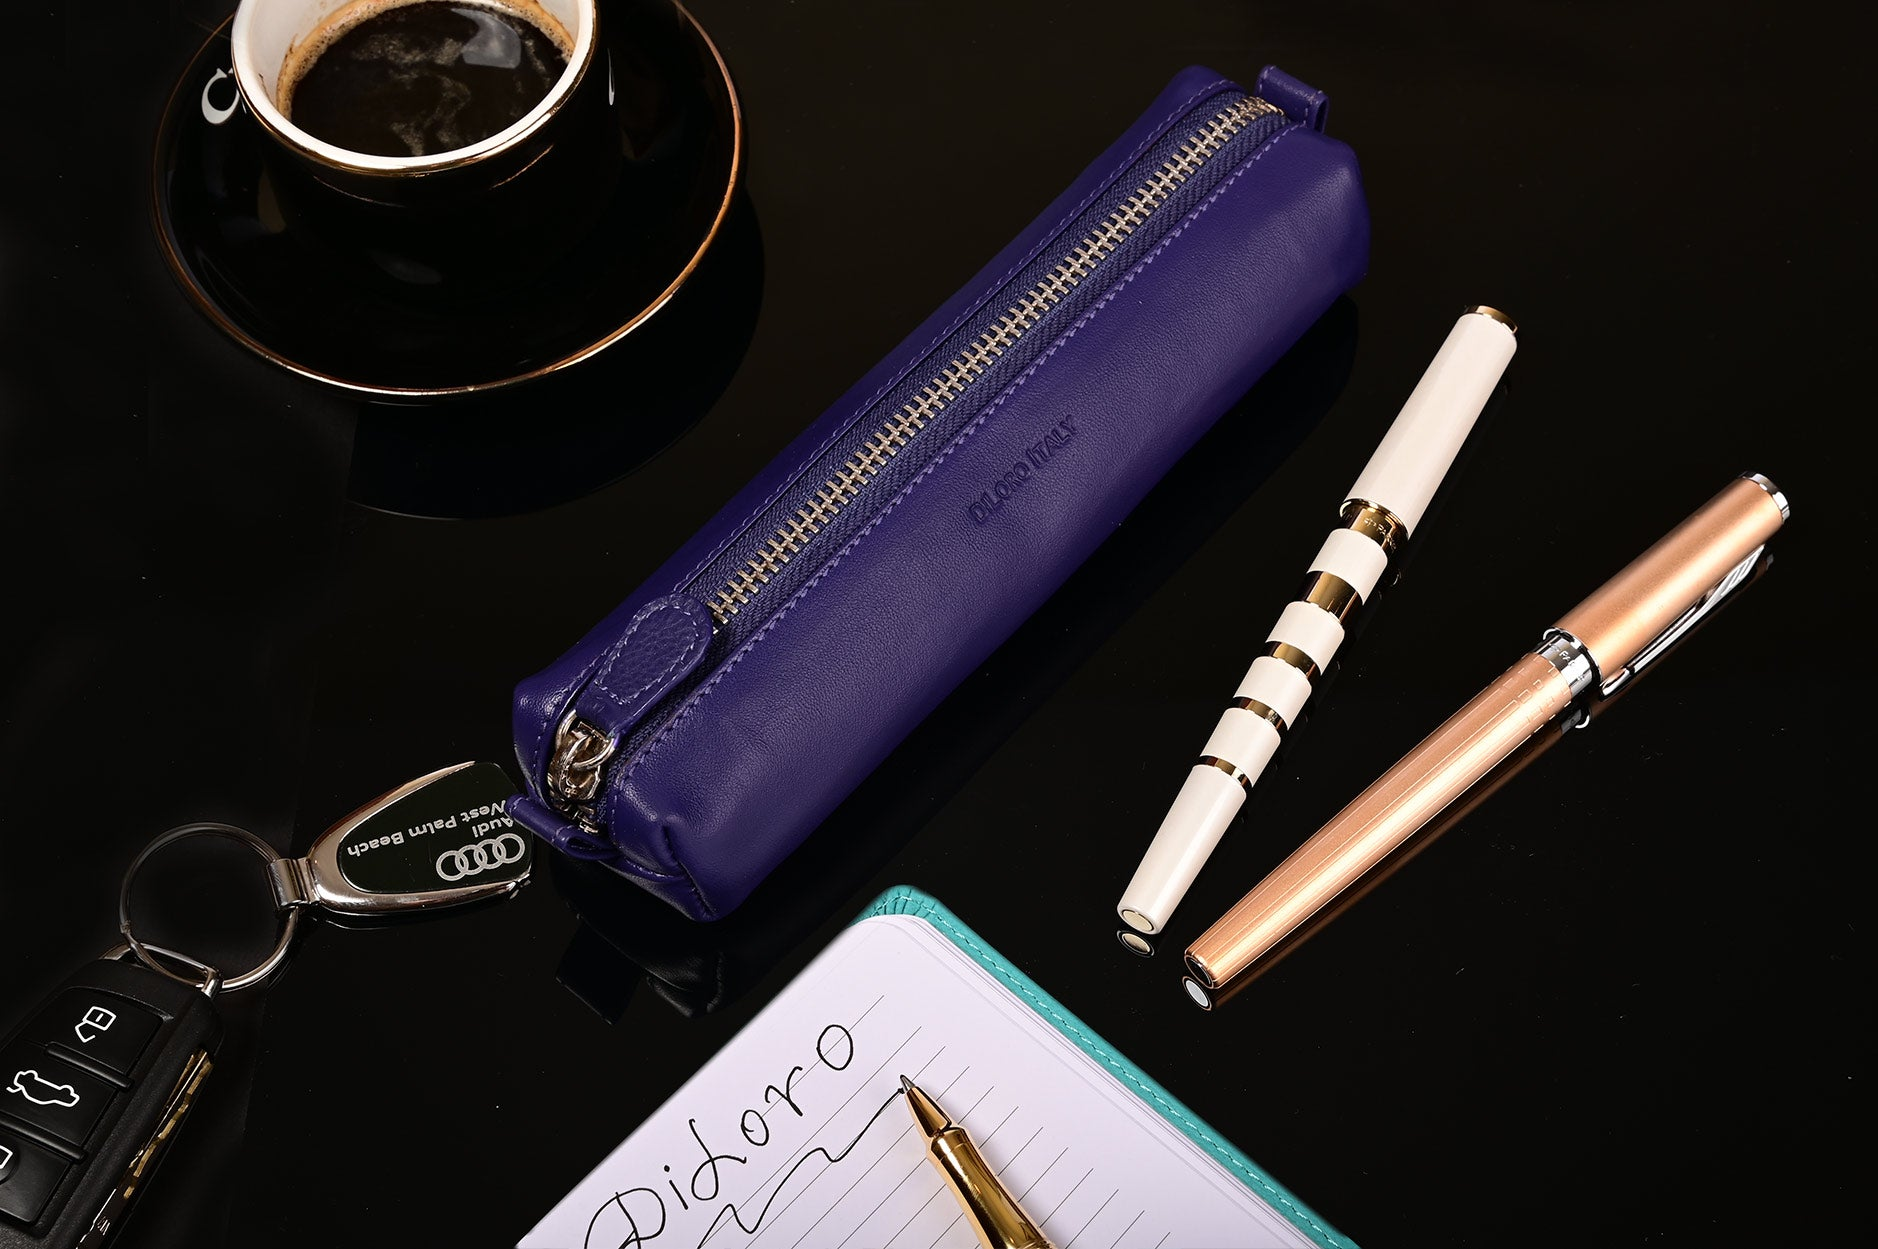 Multi-Purpose Zippered Leather Pen Pencil Case in Violet - Lifestyle Image